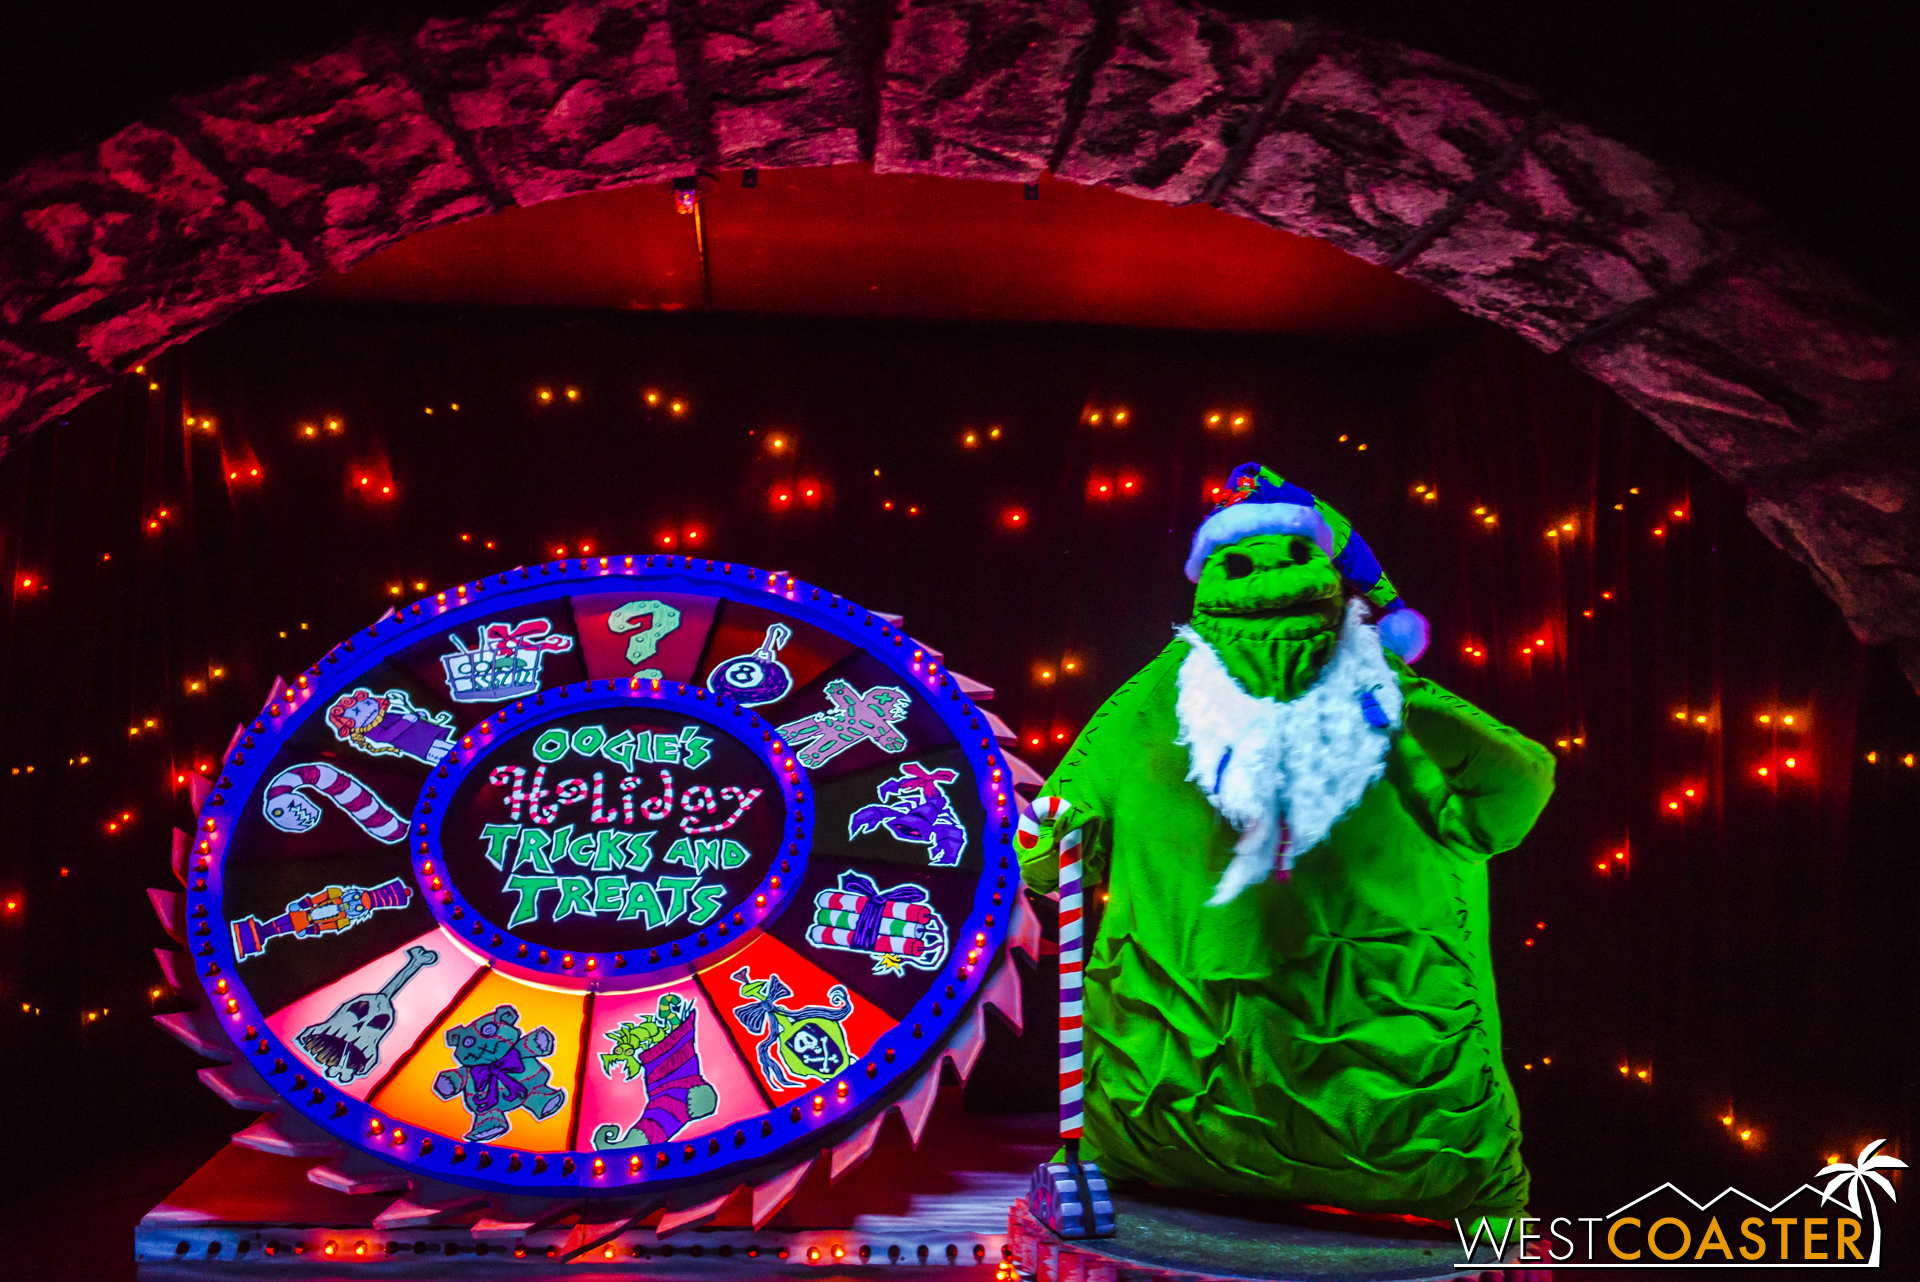 Just watch out for Oogie Boogie's tricks as you conclude the tour.